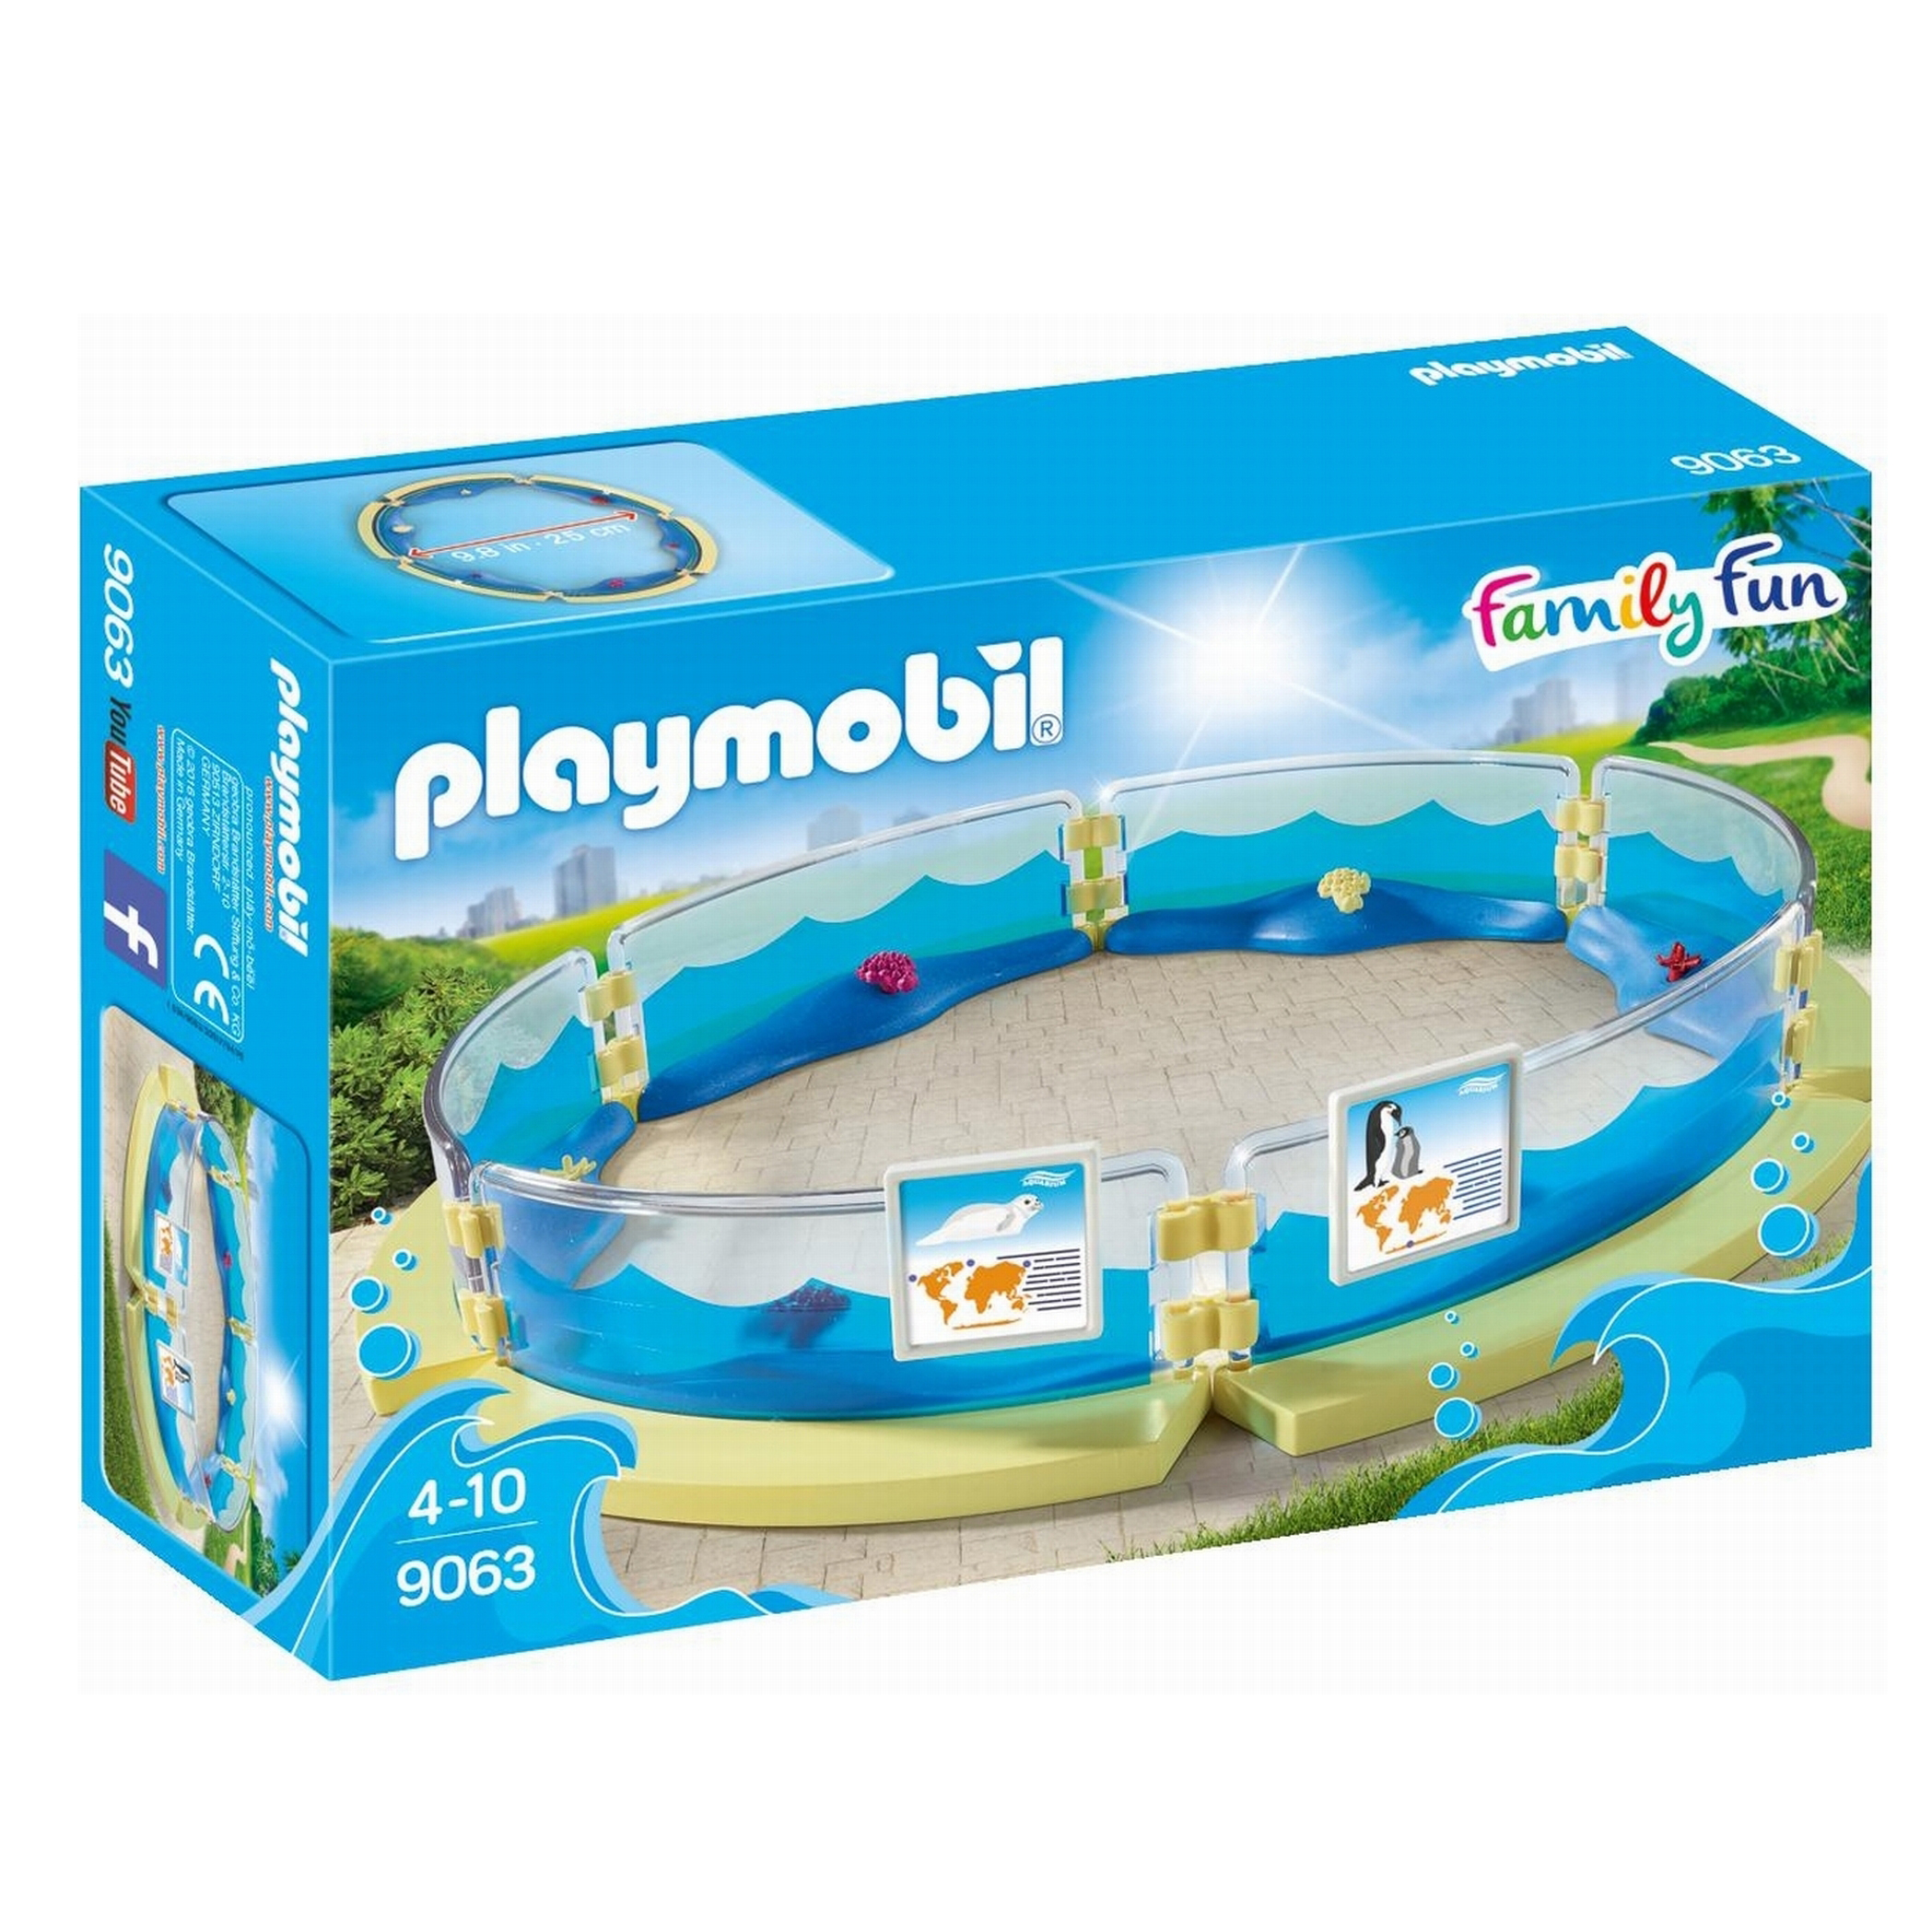 Playmobil Family Fun Aquarium Enclosure 9063